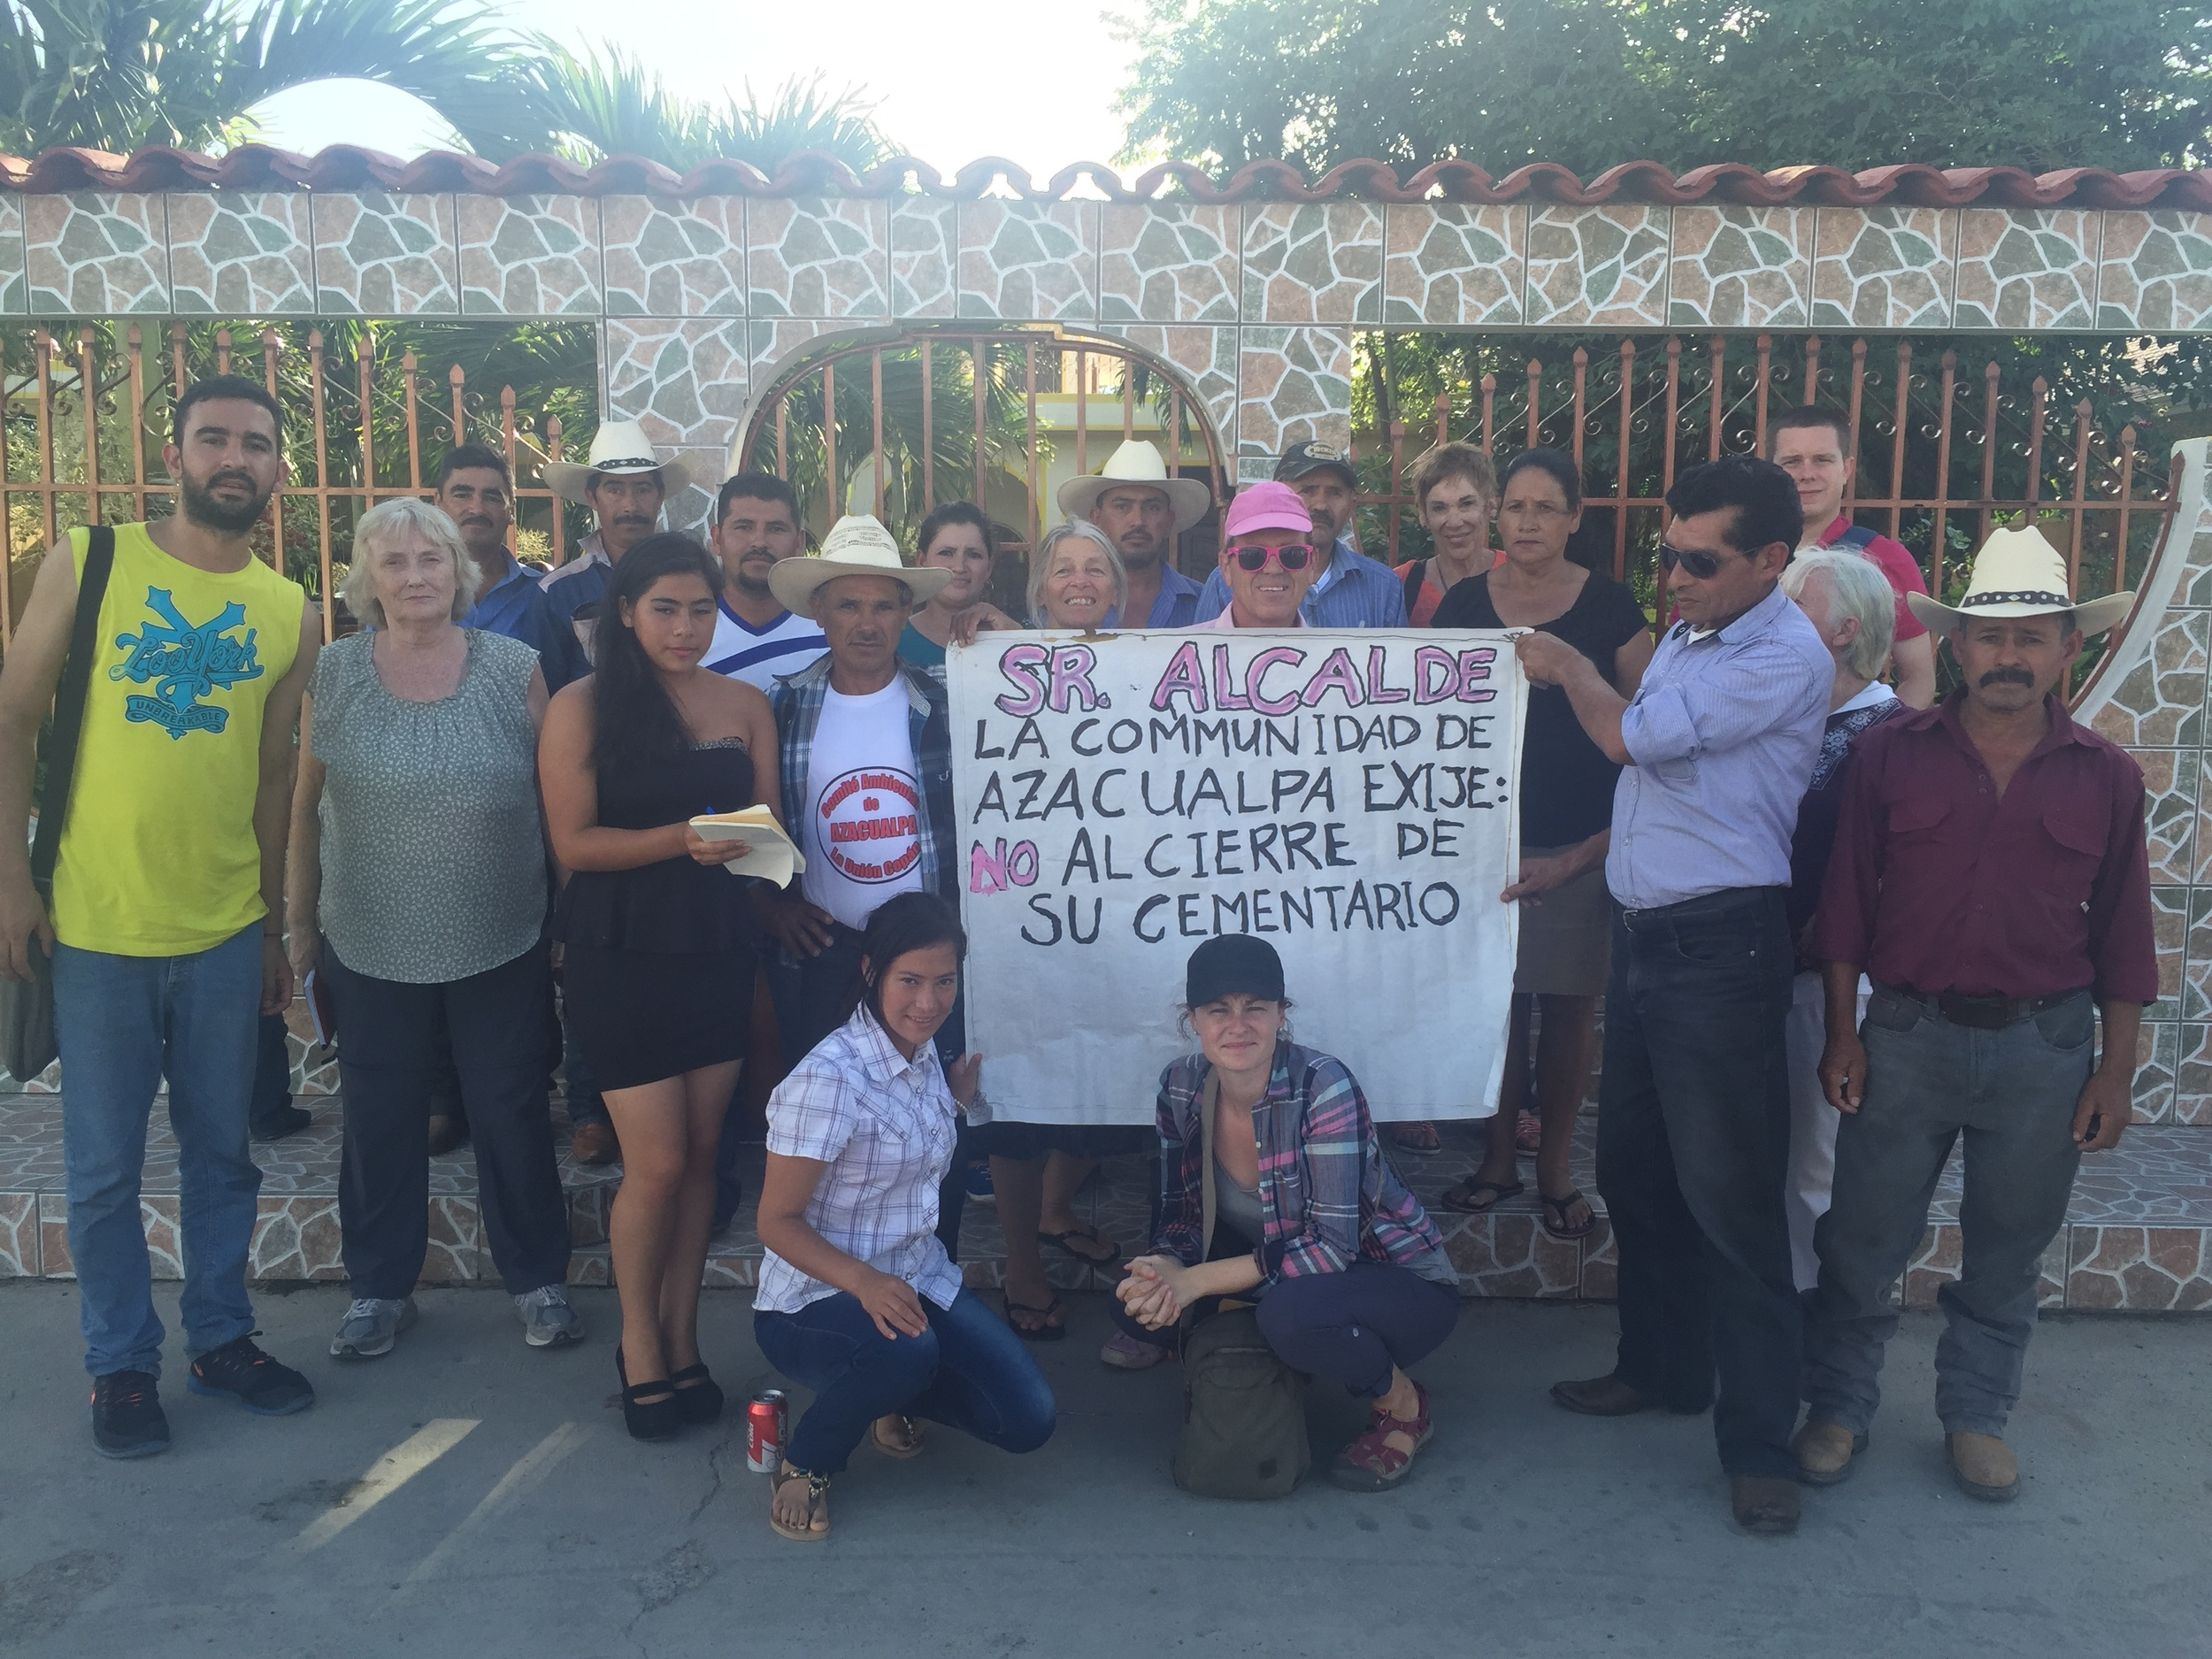 """In front of the house of the mayor of La Unión, Copan with community members and environmentalists from the community of Azacualpa that are fighting to protect their 200-year old cemetery under threat by the expansion of Canadian mining company, Aura Minerals. Sign reads: """"Mr. Mayor. The community of Azacualpa demands: no to the closure of their cemetery."""""""